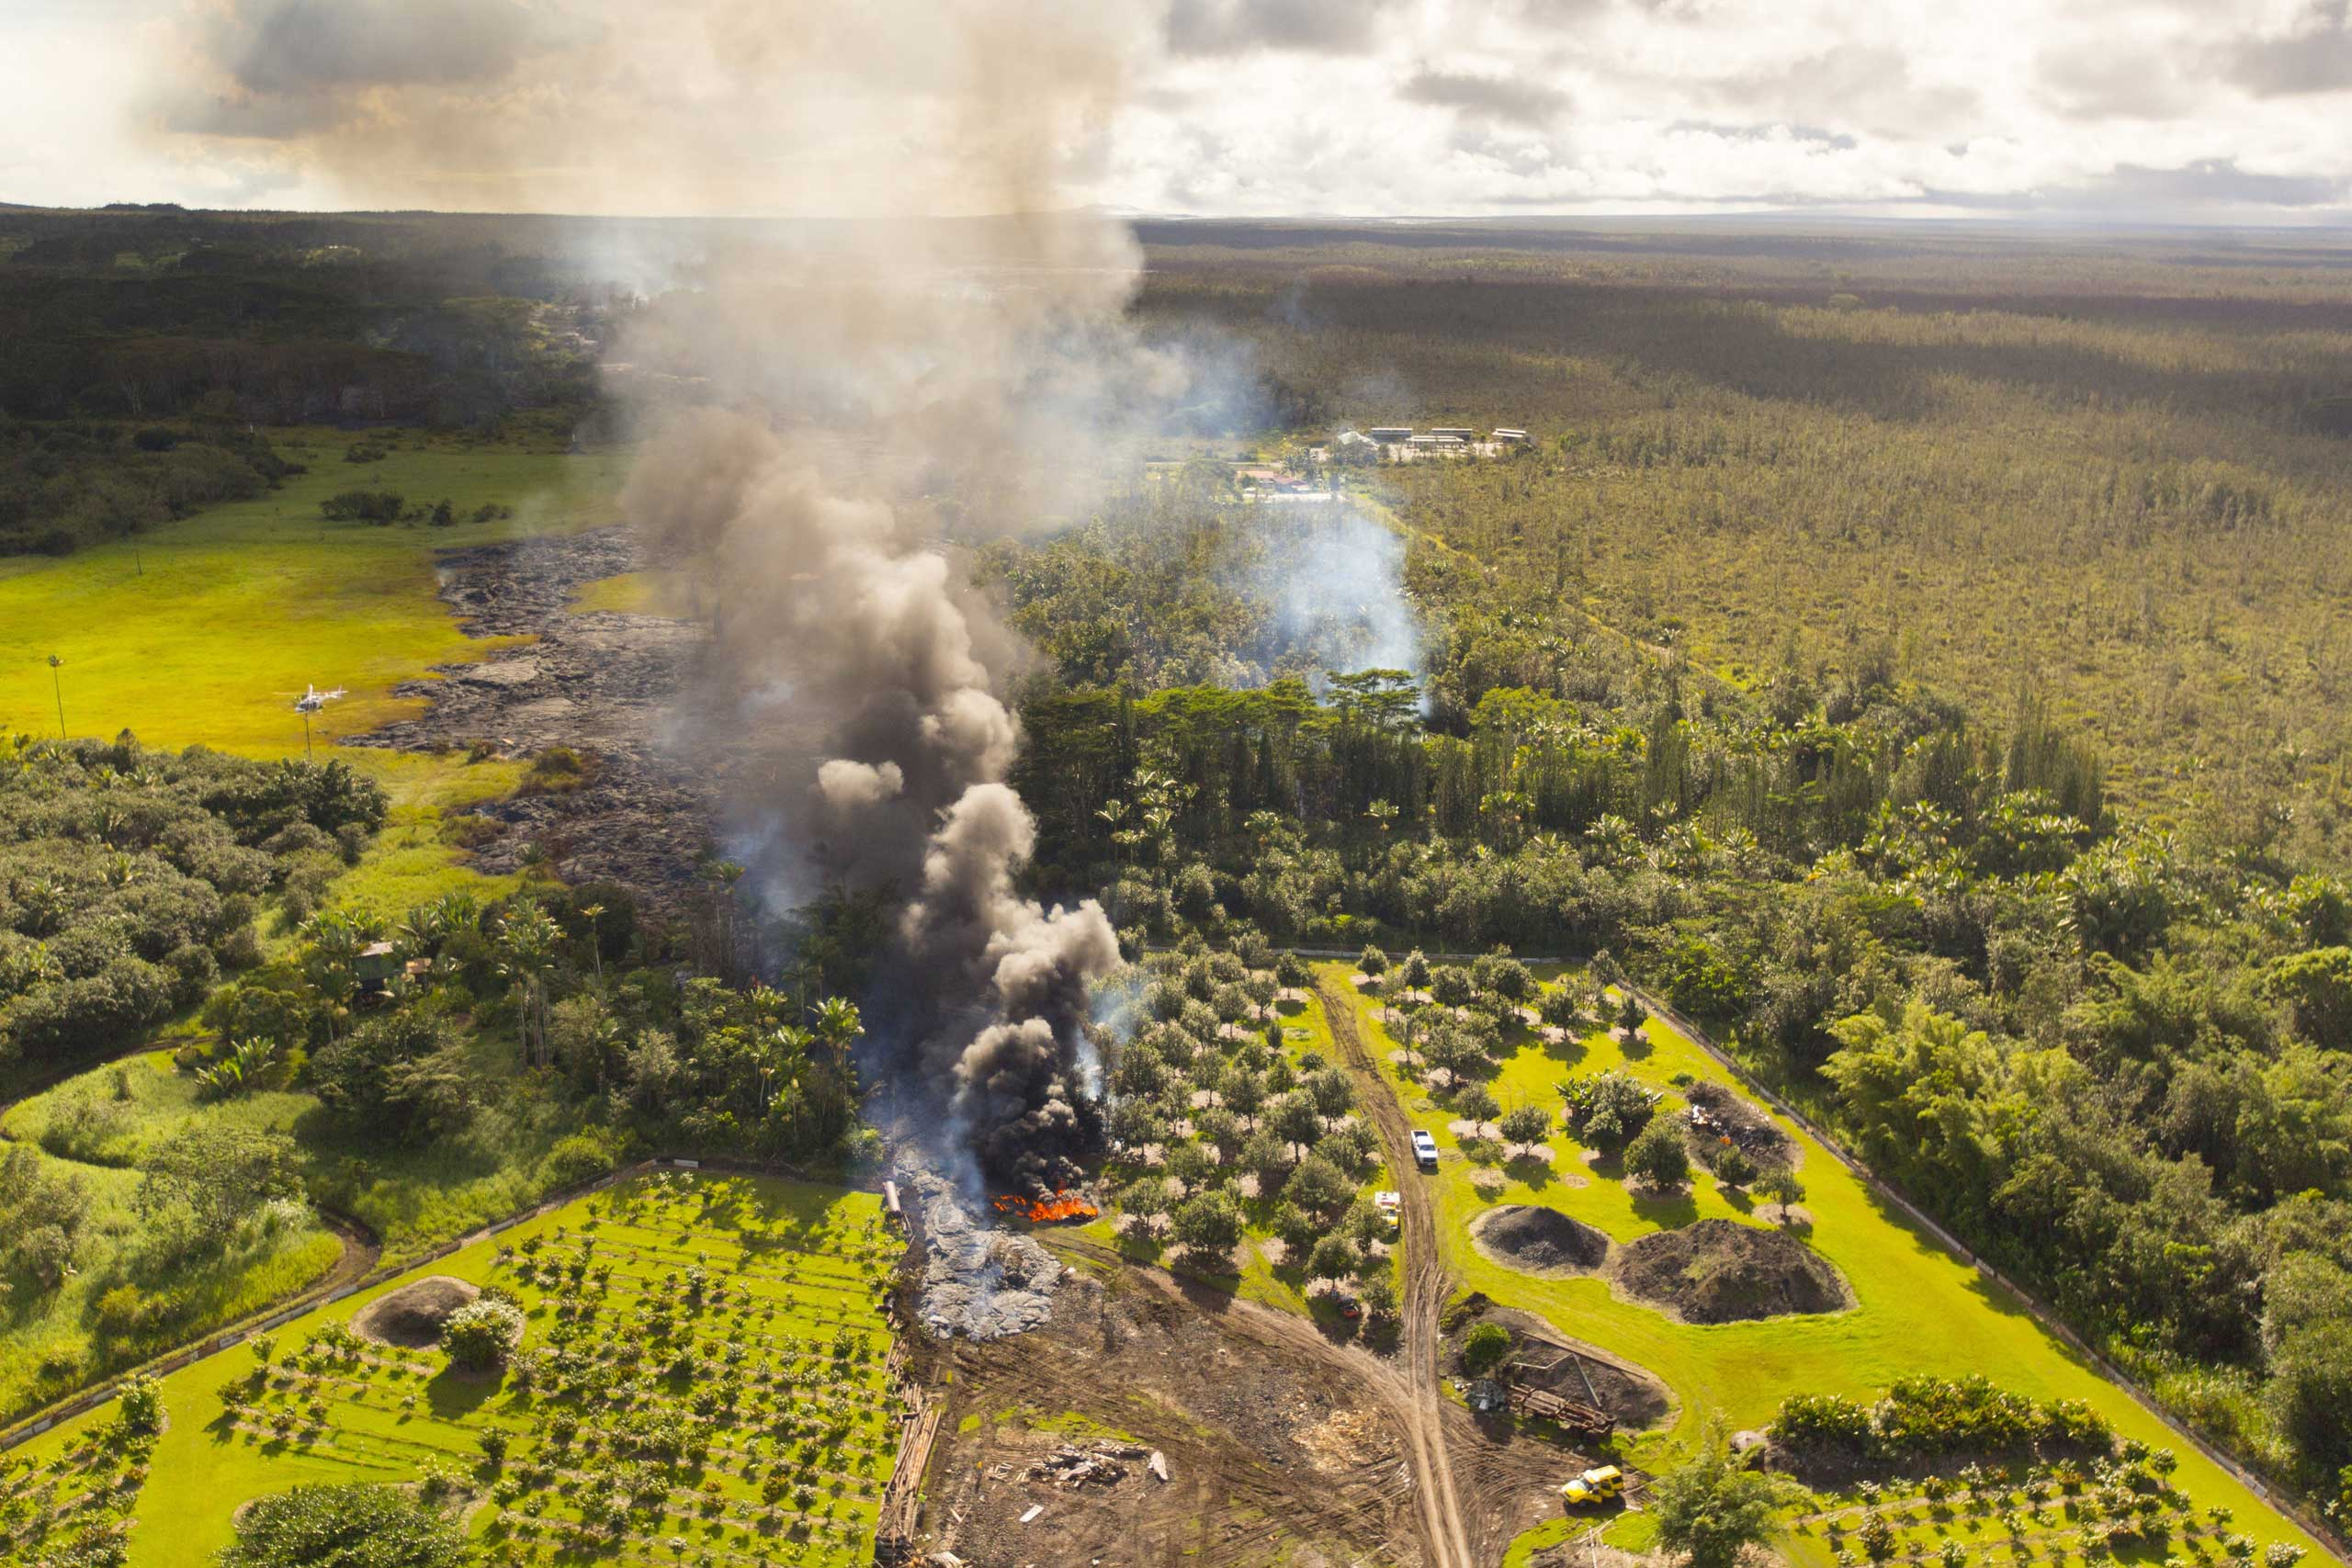 Lava flow from the Kilauea Volcano moves along the ground  in Pahoa, Hawaii on Oct. 28, 2014.